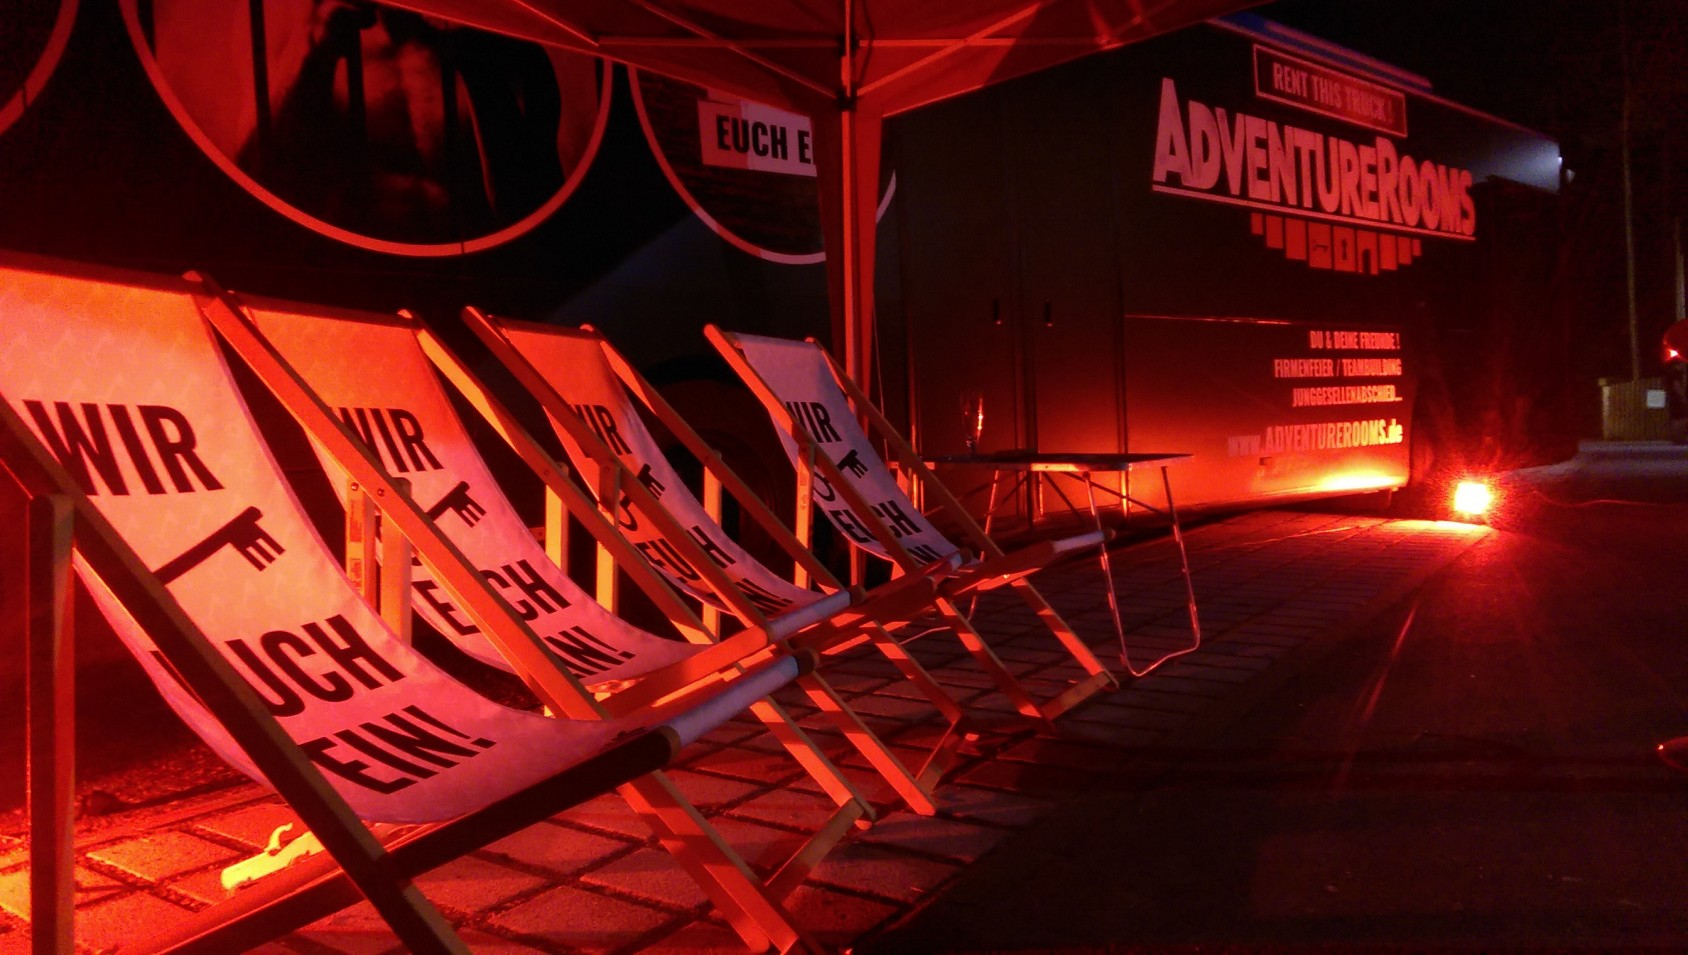 AdventureRooms on Tour Highlight private Veranstaltung mobiles Escape Game